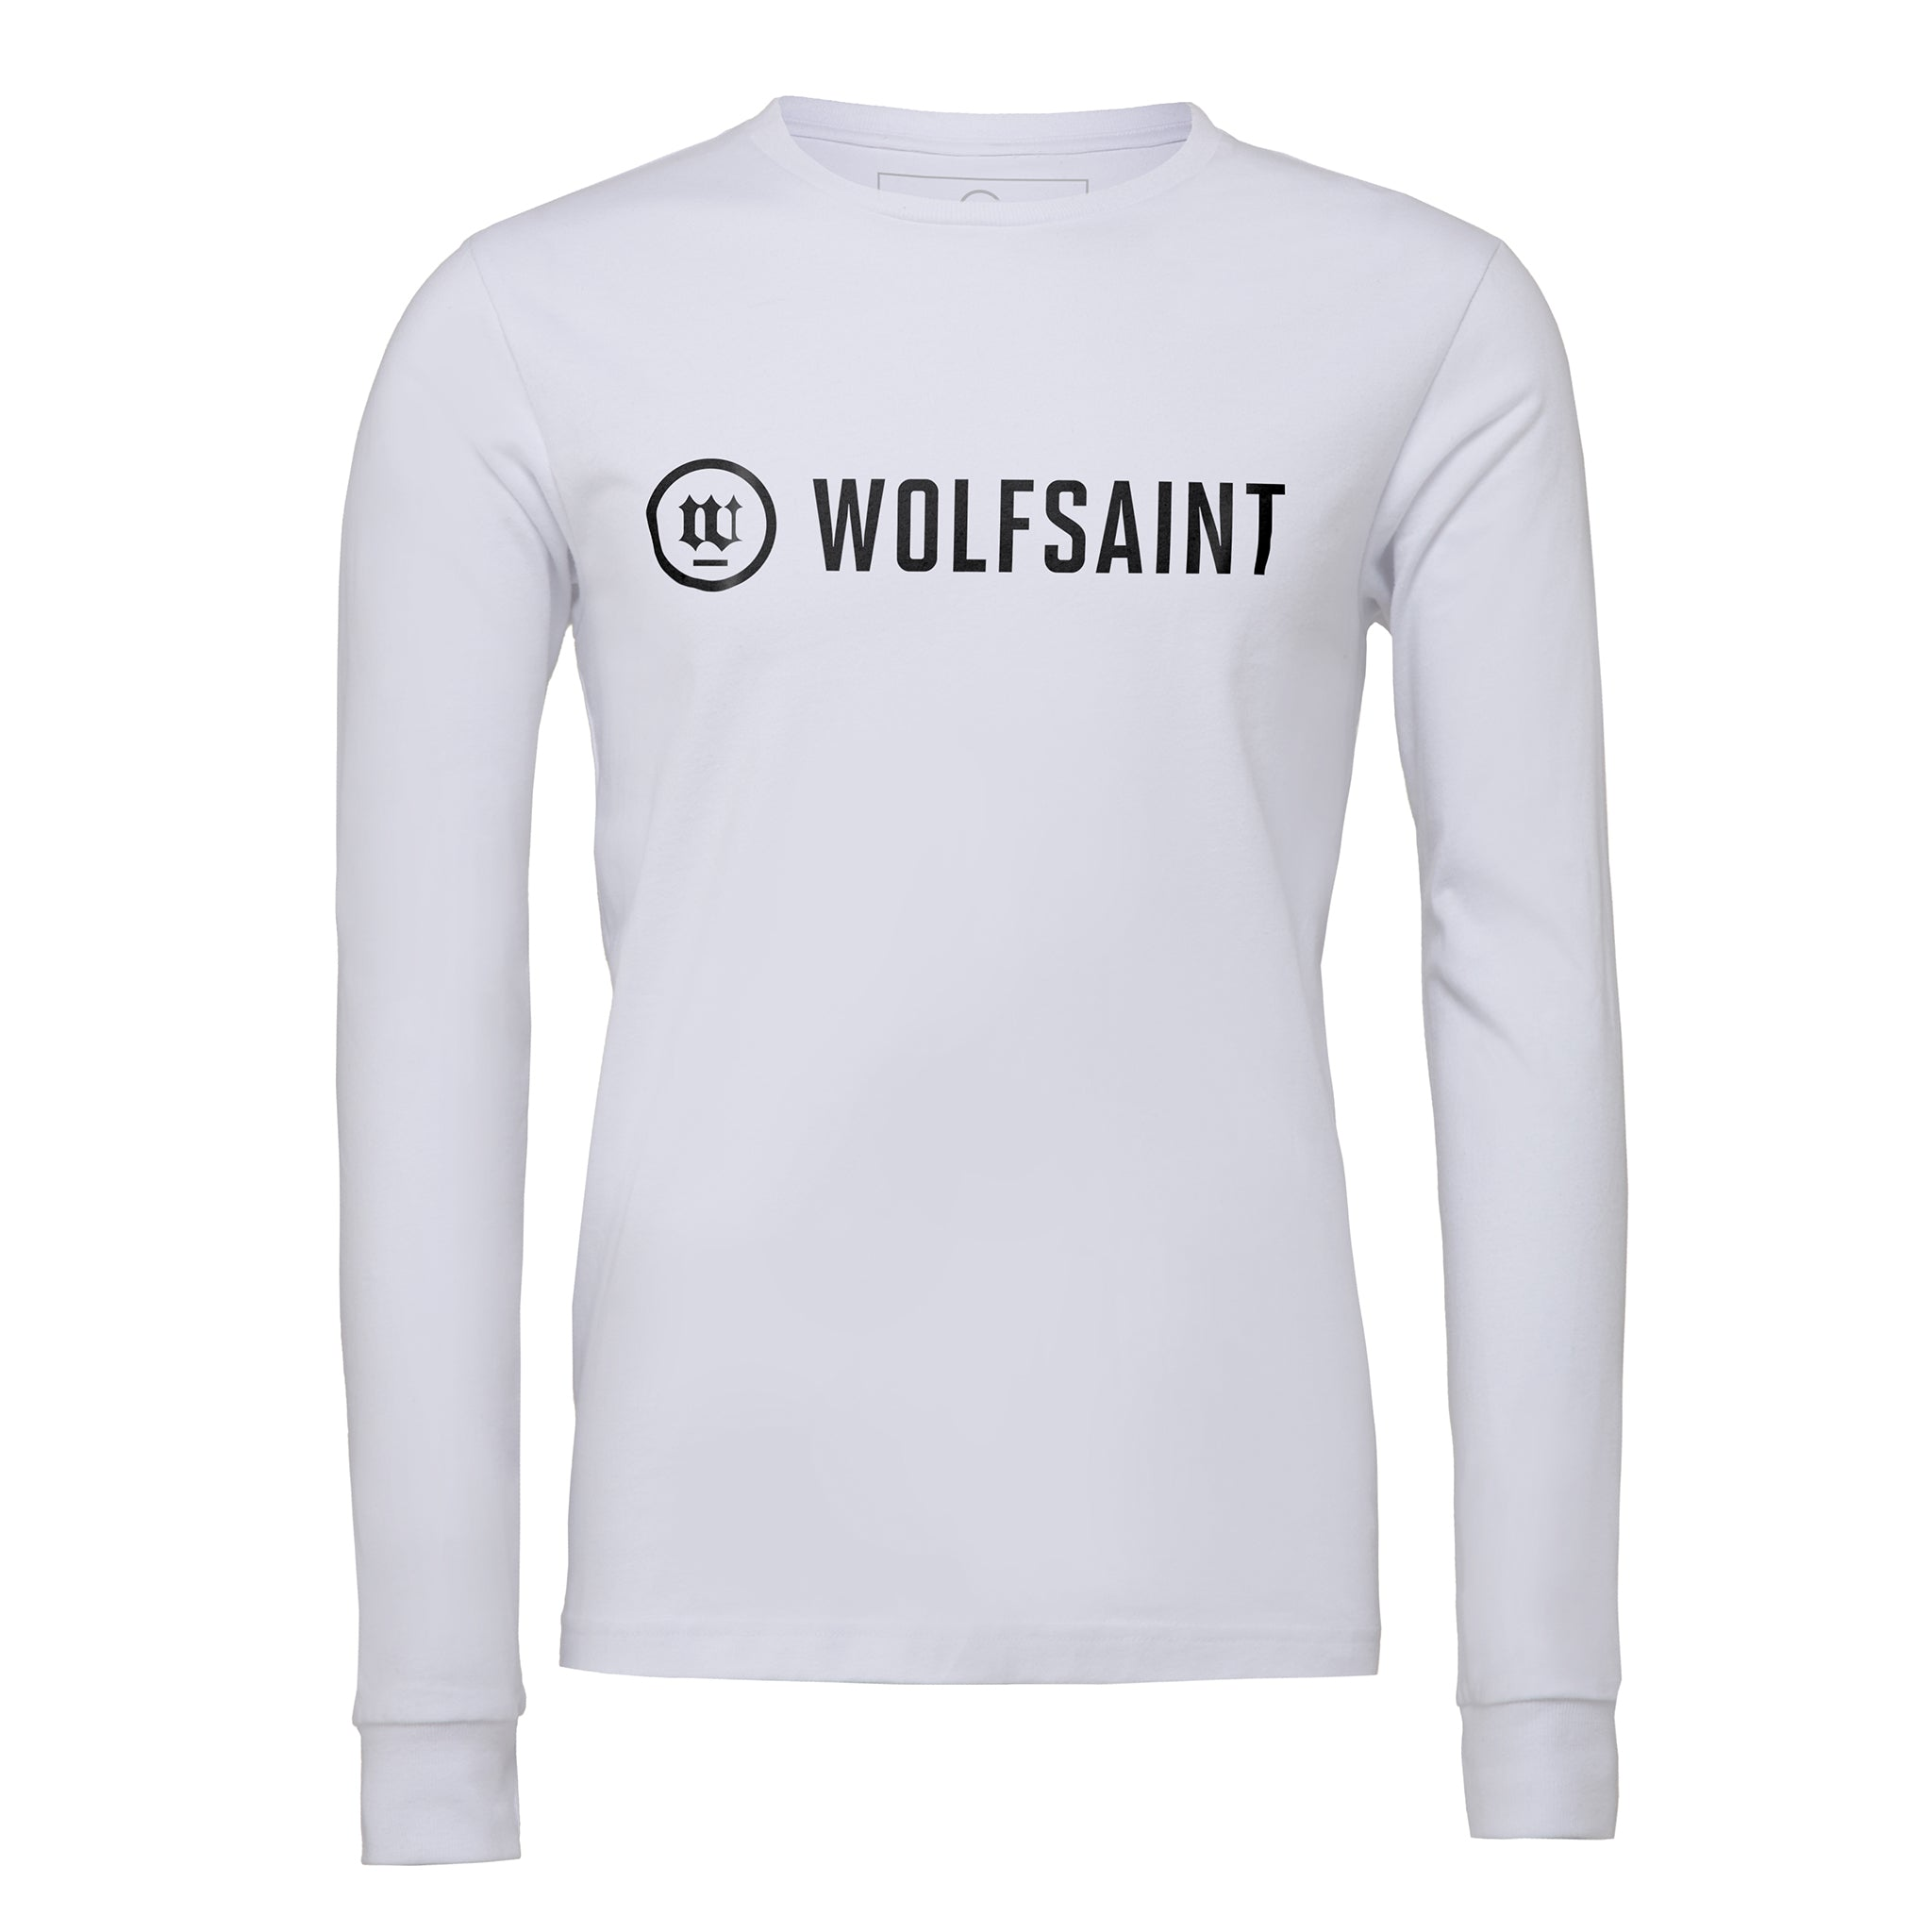 A simple, elegant unisex long sleeved t-shirt in White, with the fashionable WOLFSAINT logo branding across the chest in black. From Wolfsaint.net